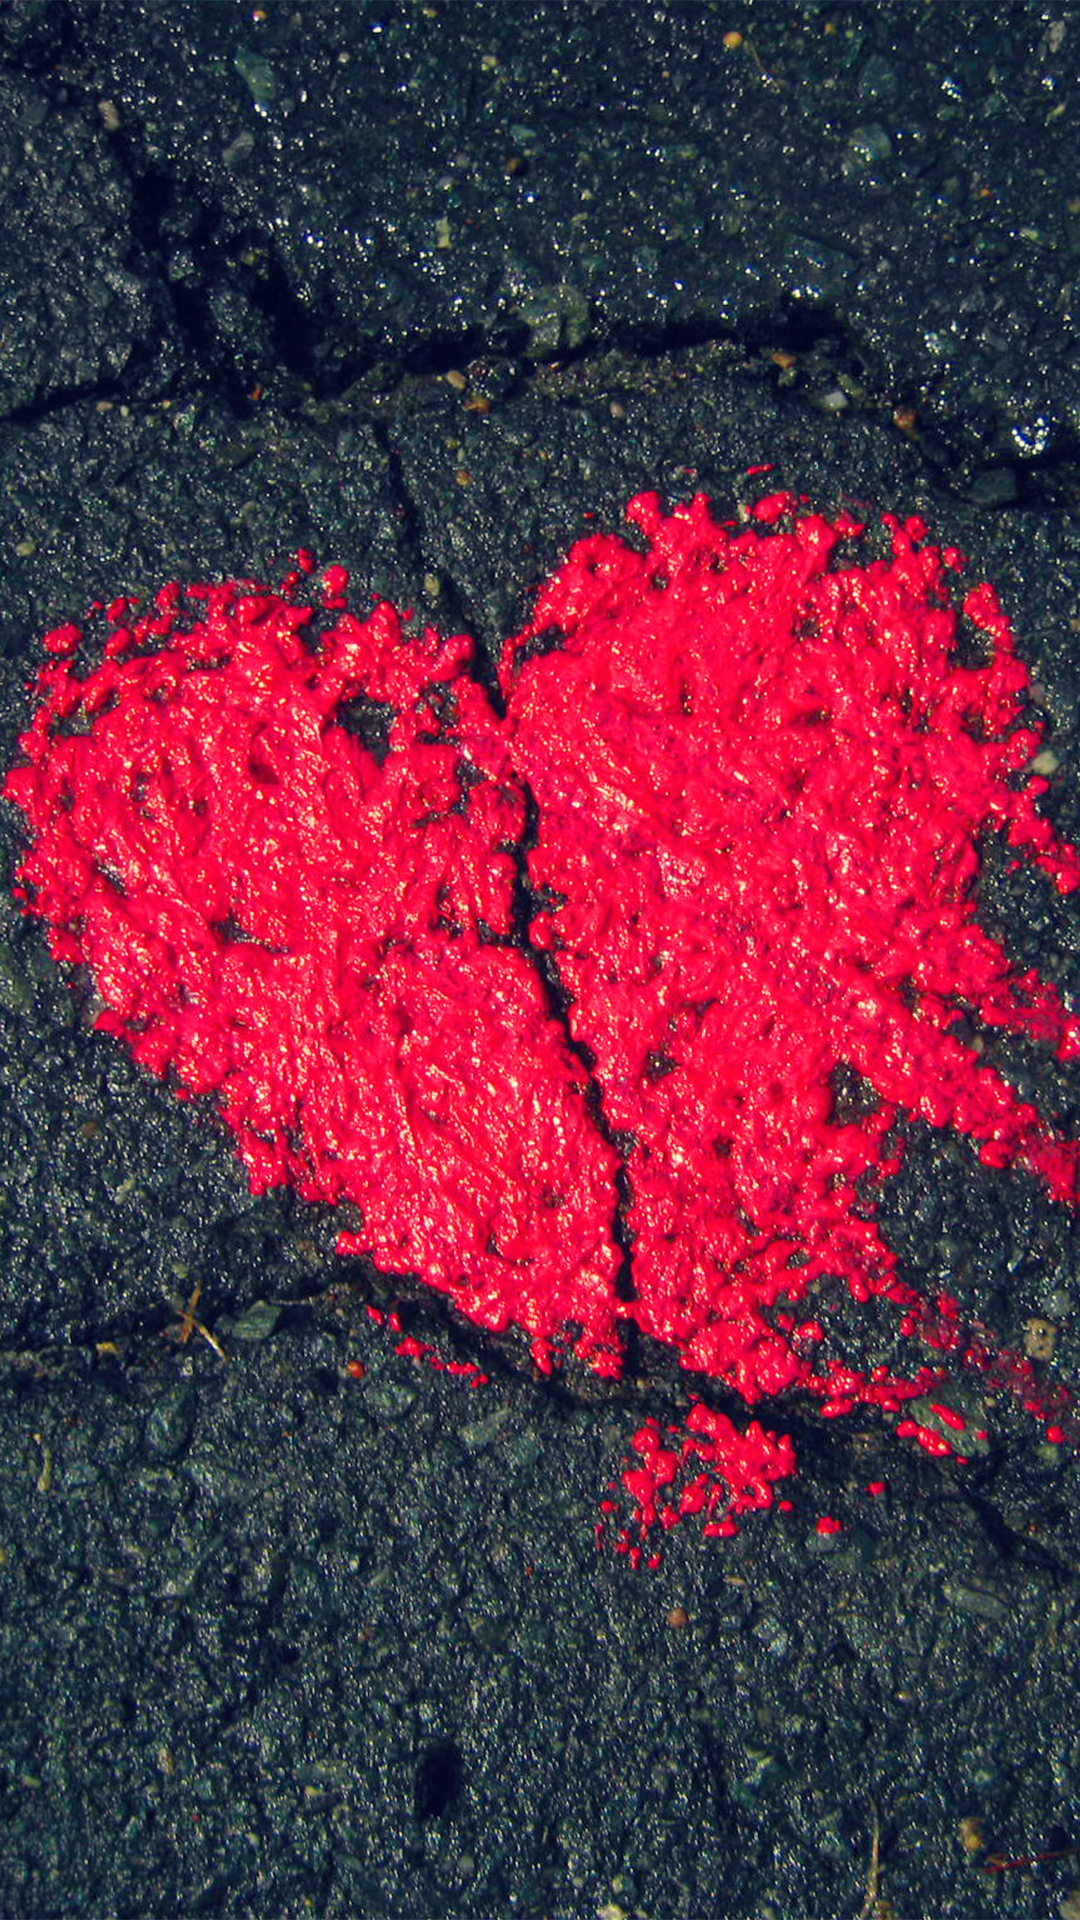 Heart Shape On Asphalt